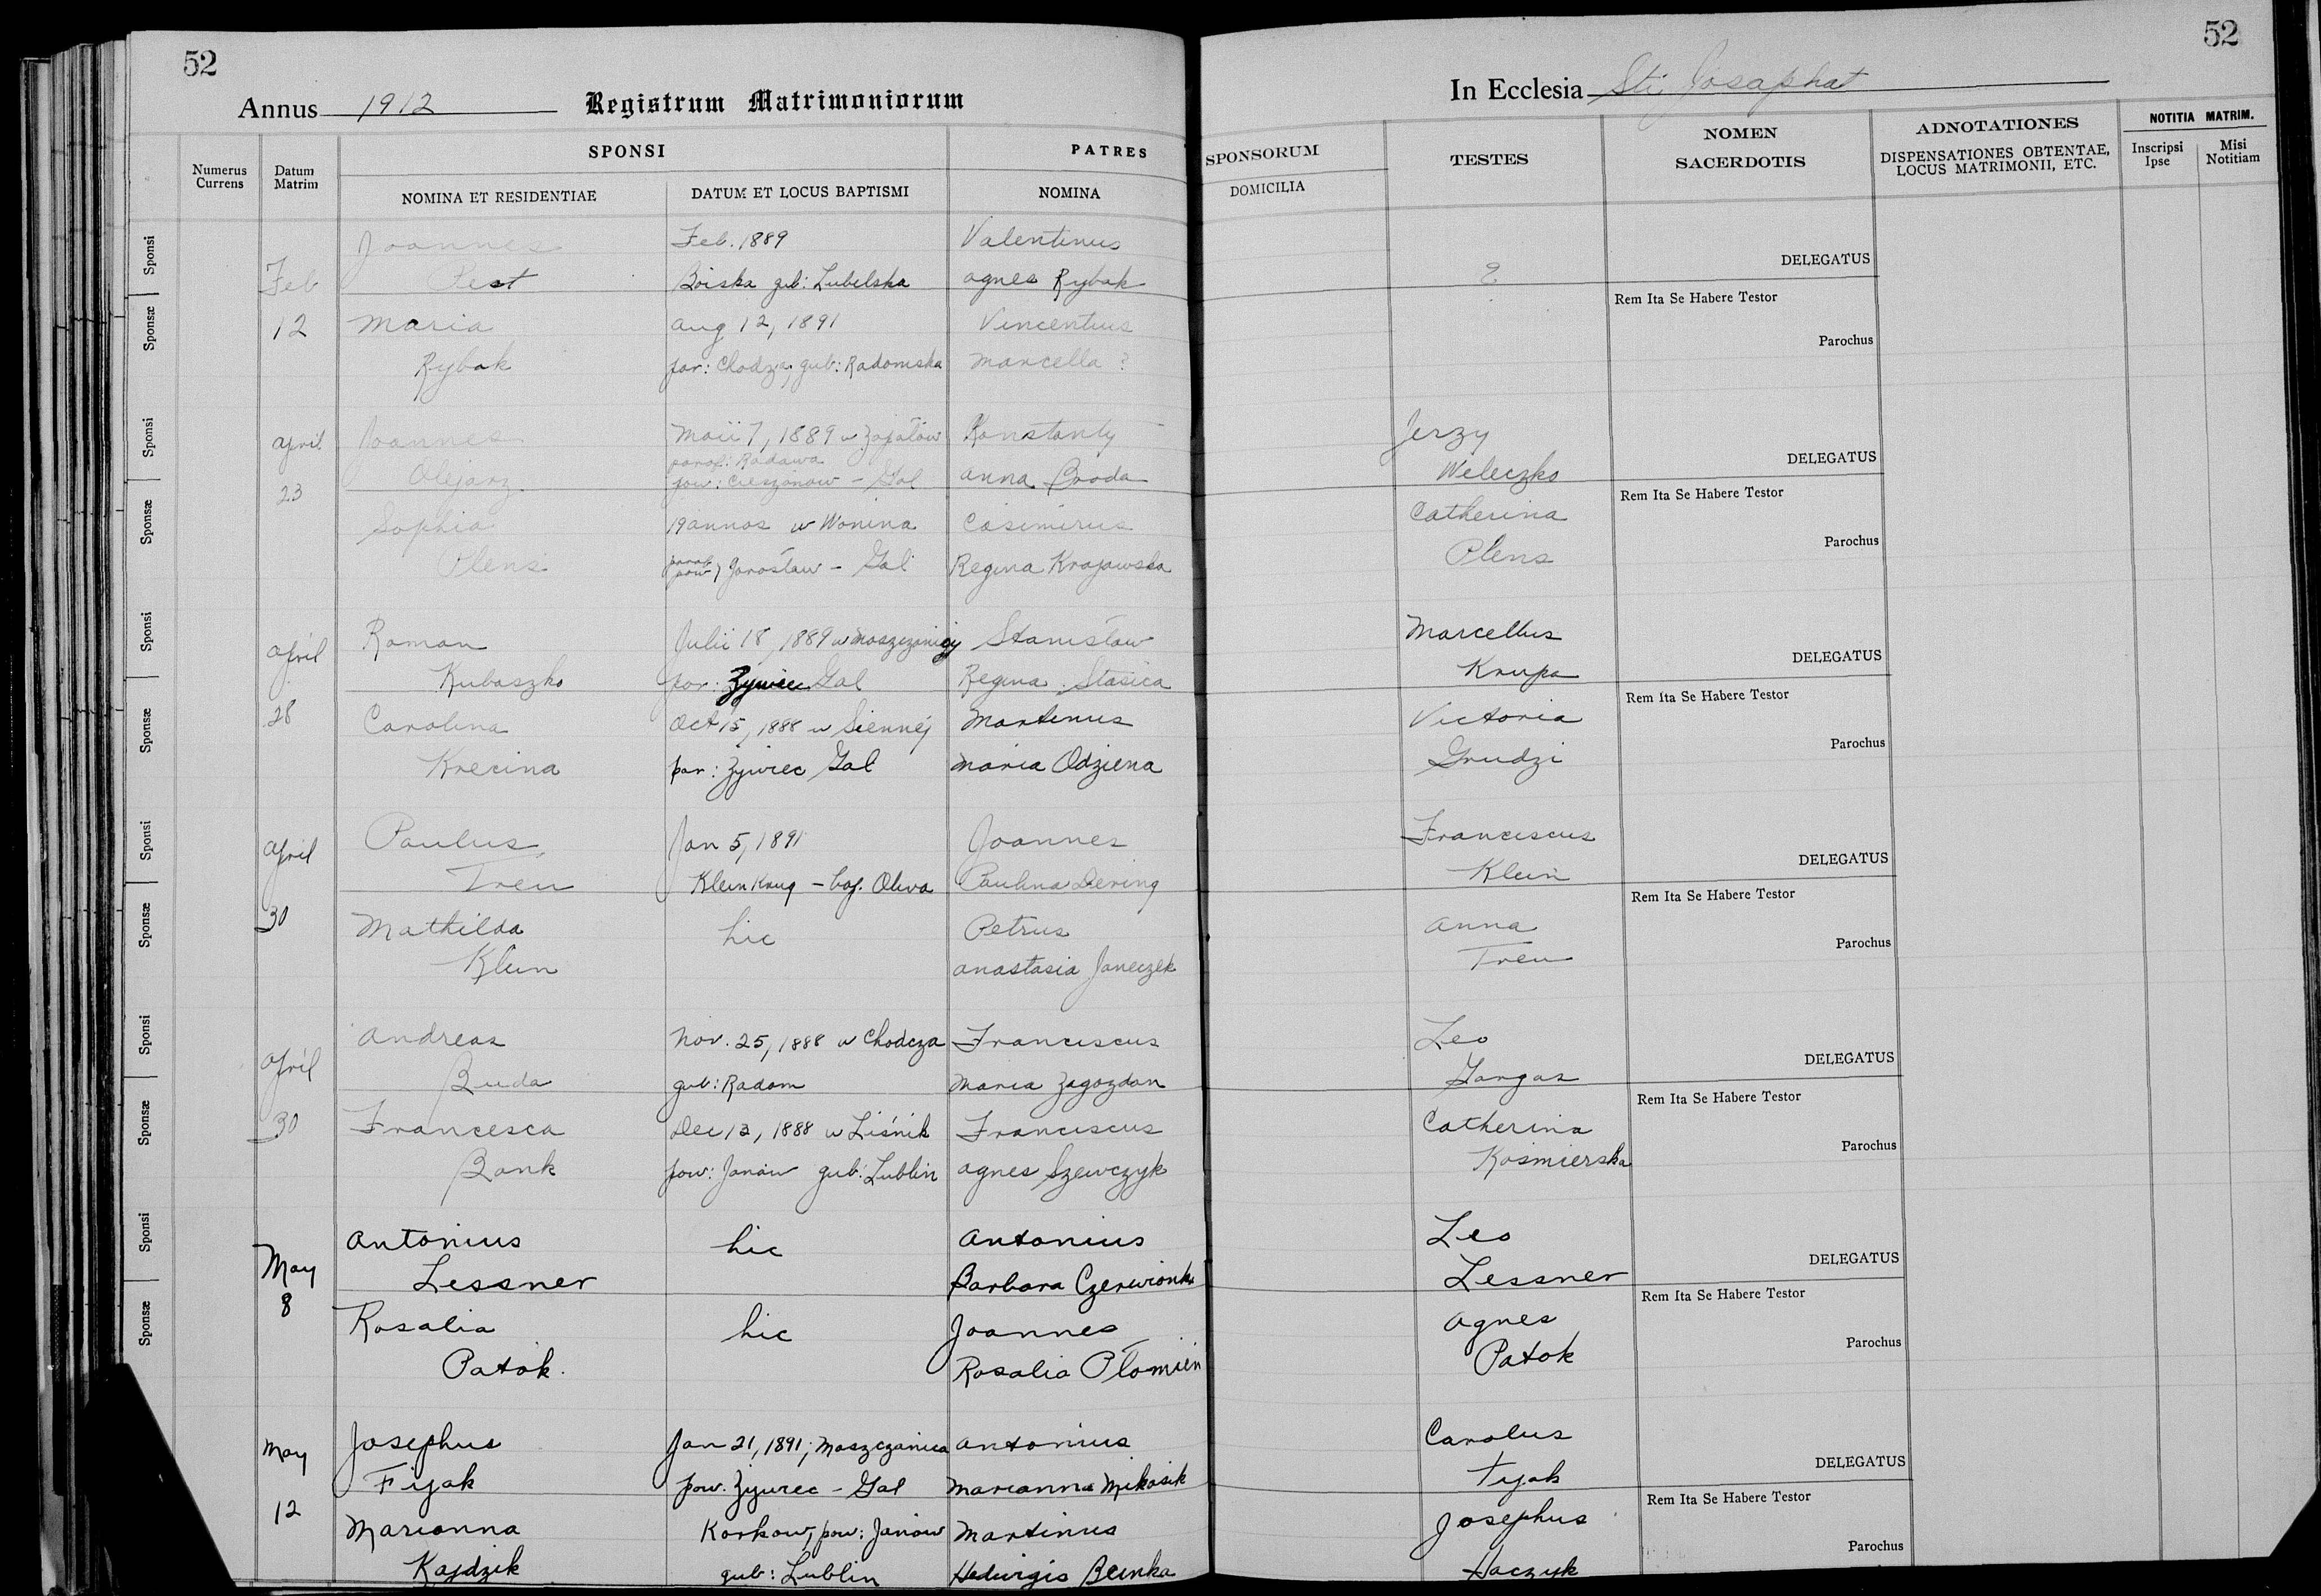 Kubaszko Roman and Krecina Carol April 28 1912 St. Josaphat Parish Chicago Marriage Register.jpg